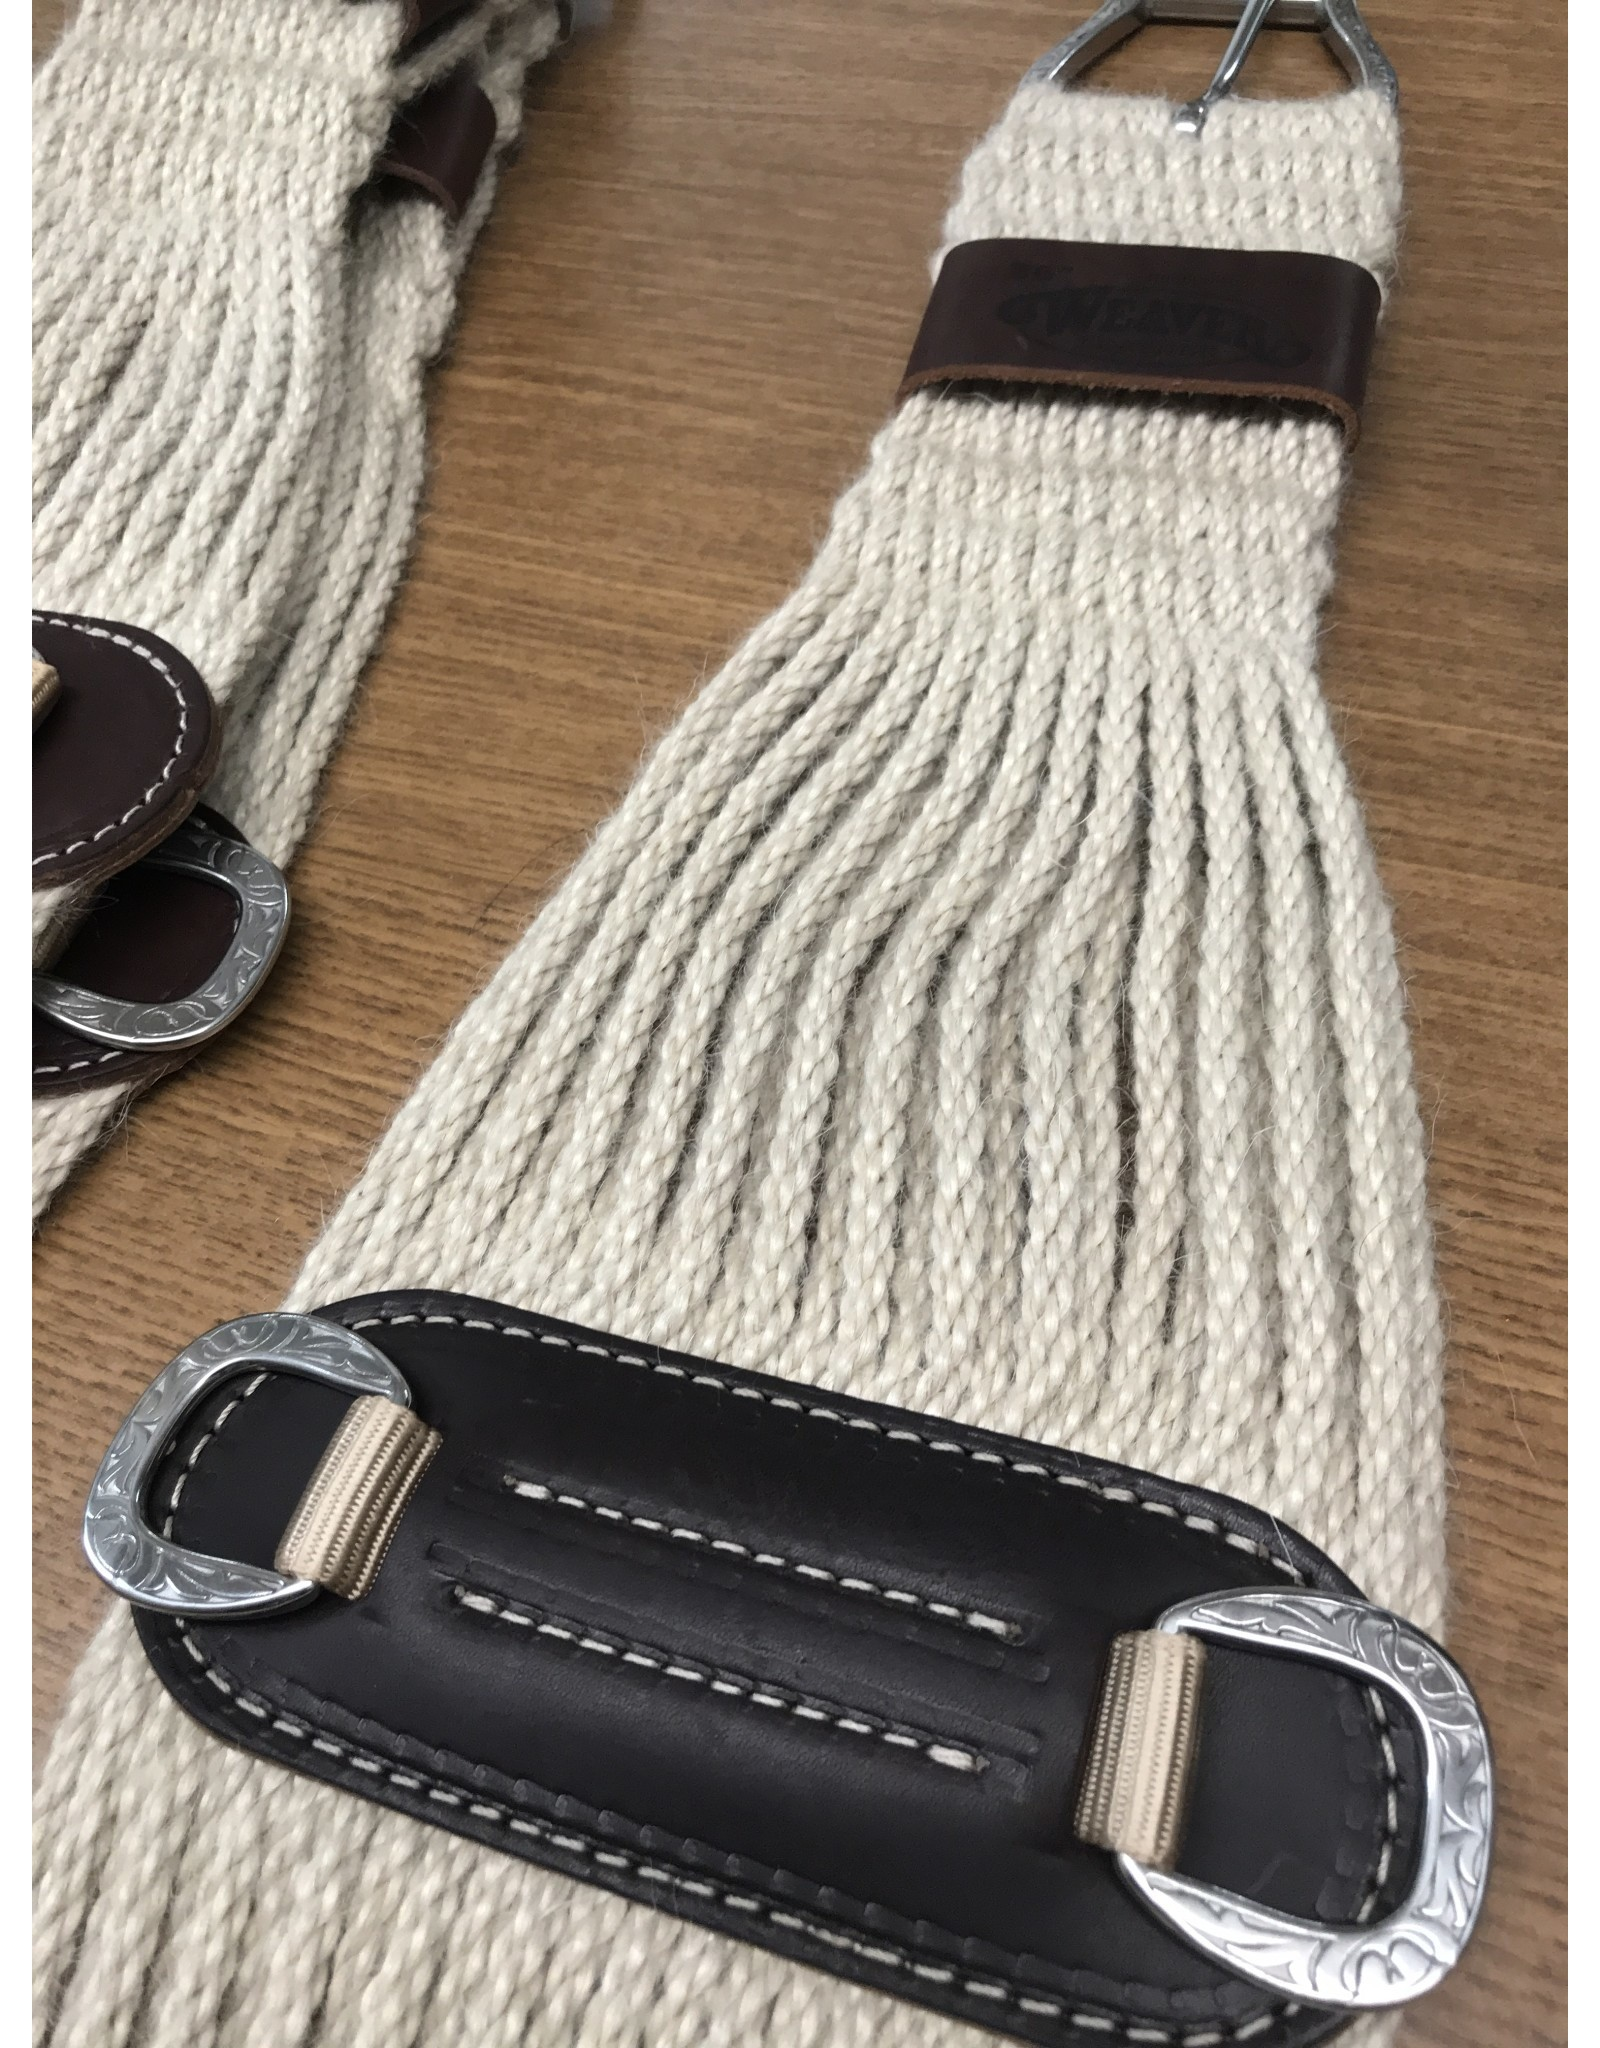 CIN* 100% Mohair Roper Cinch 36''    35-2436-36   AAAA*P (fancy roller buckles and one side leather cinch holder)